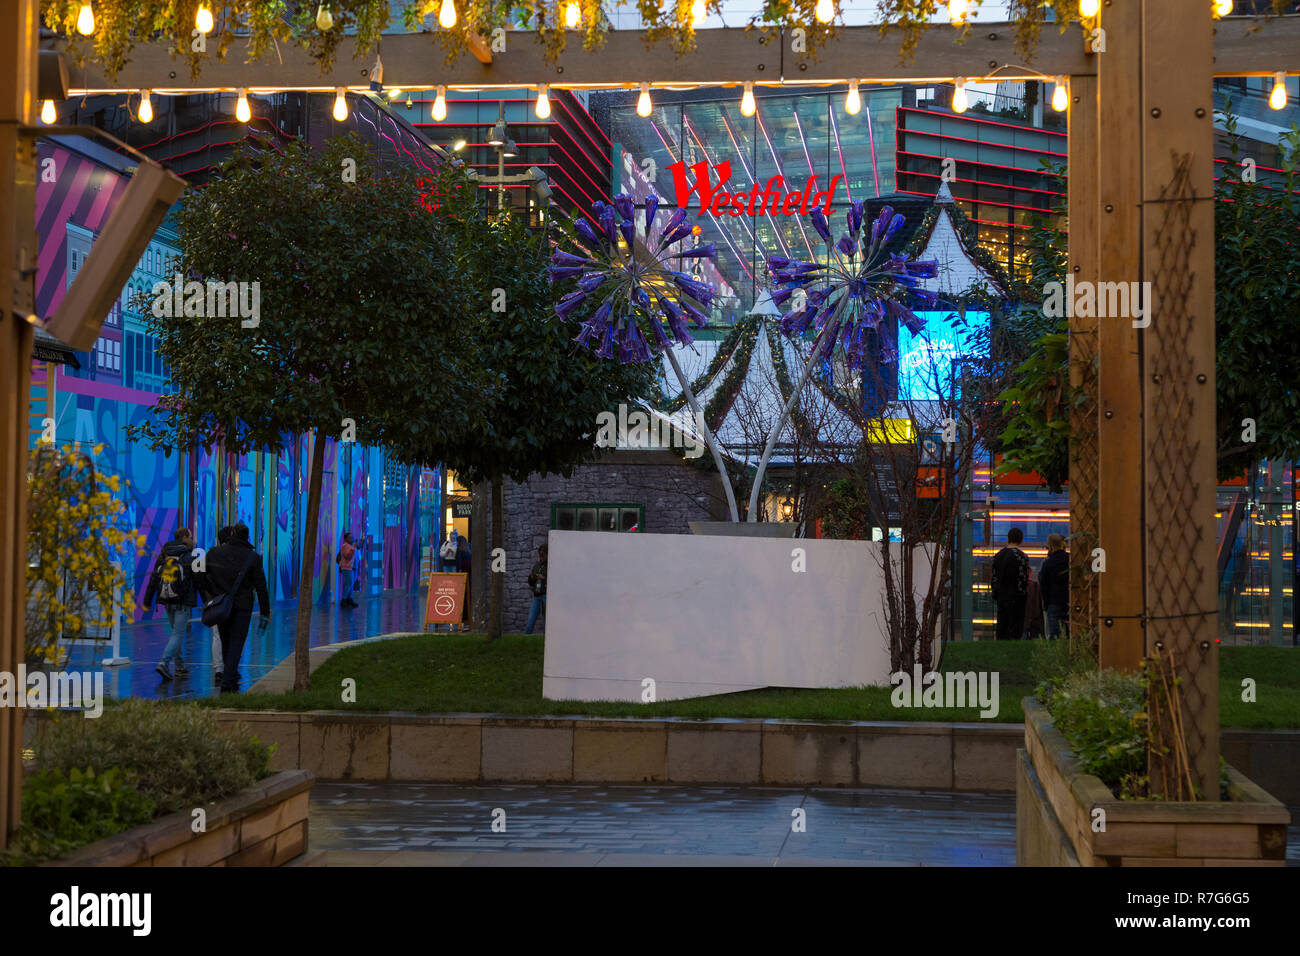 Westfield shopping centre, christmas decorations, stratford, london, uk Stock Photo